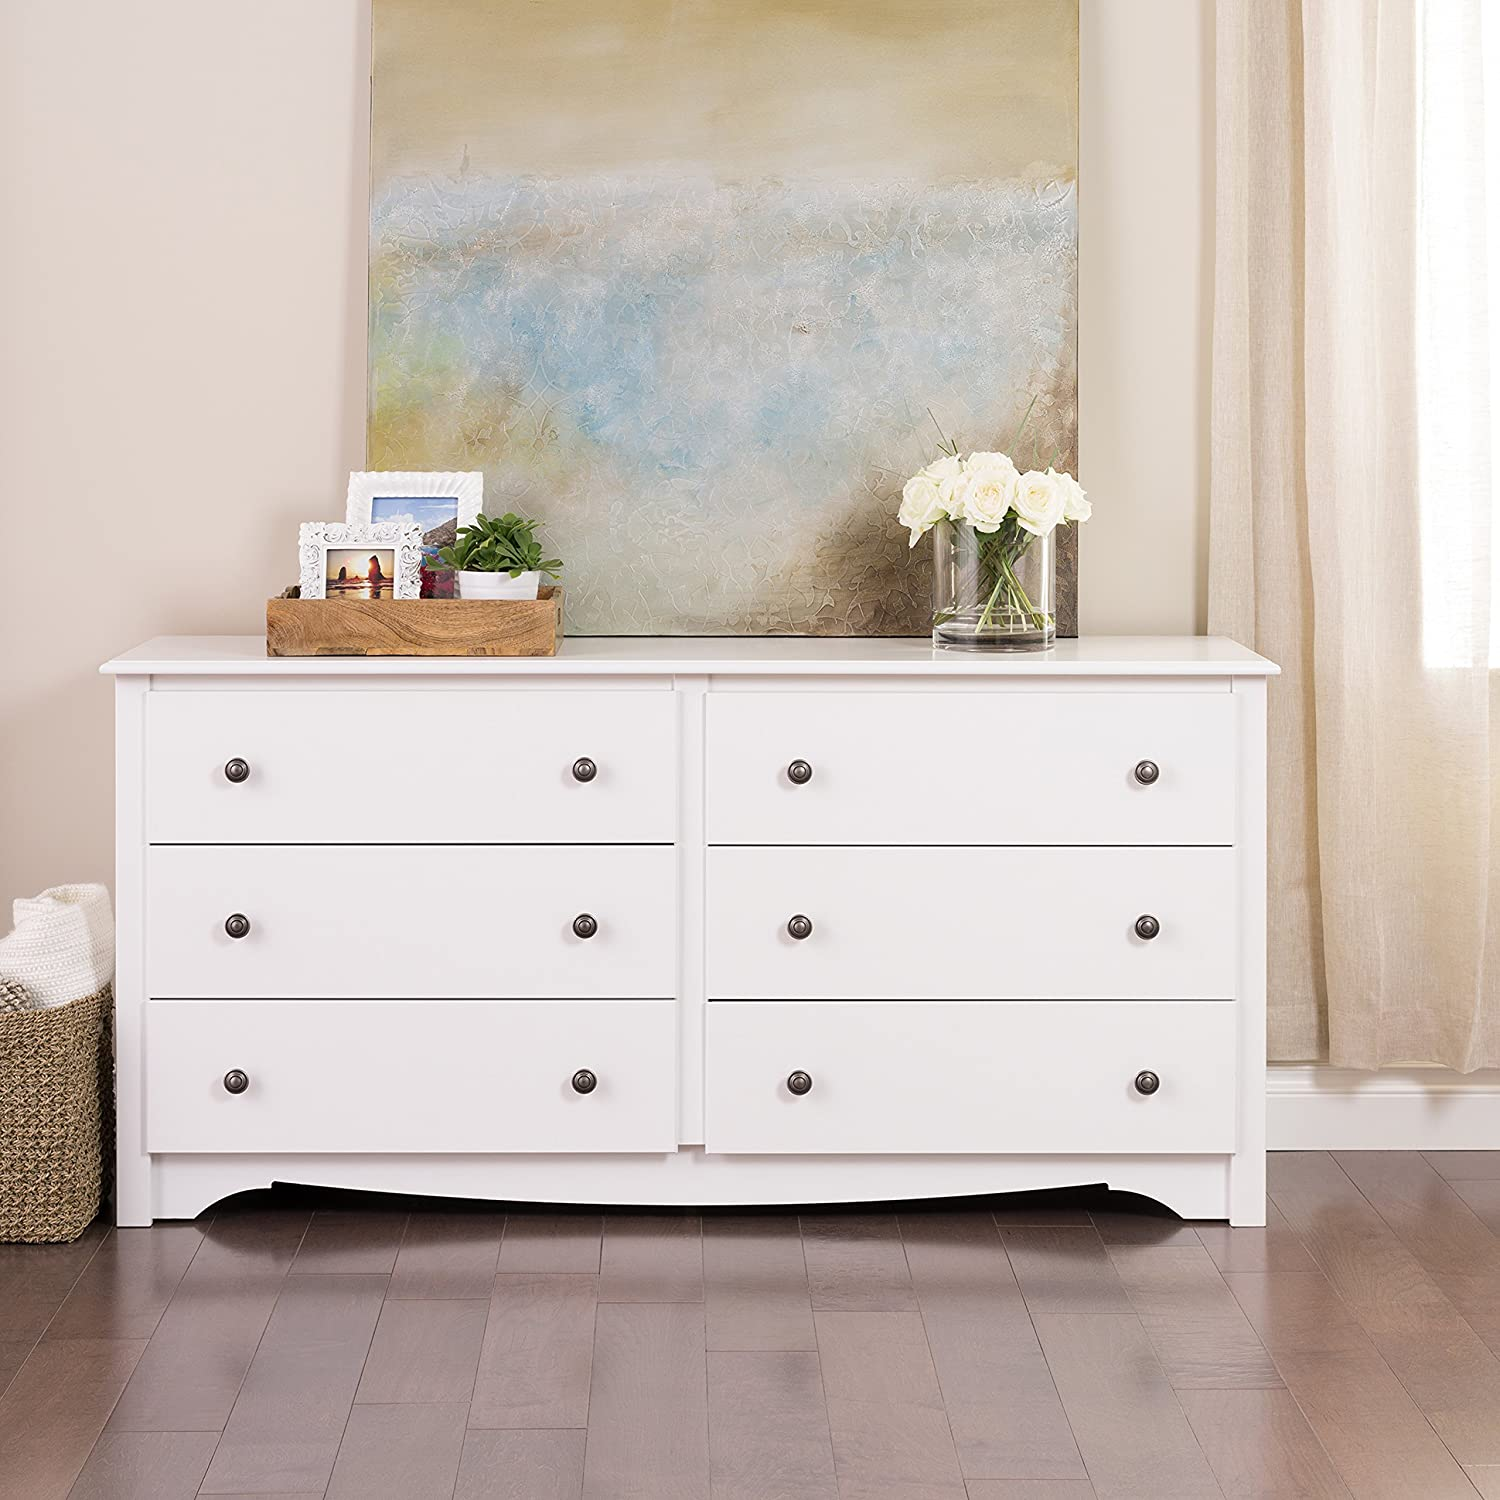 white bedroom dressers.  Amazon com White Monterey 6 Drawer Dresser Kitchen Dining